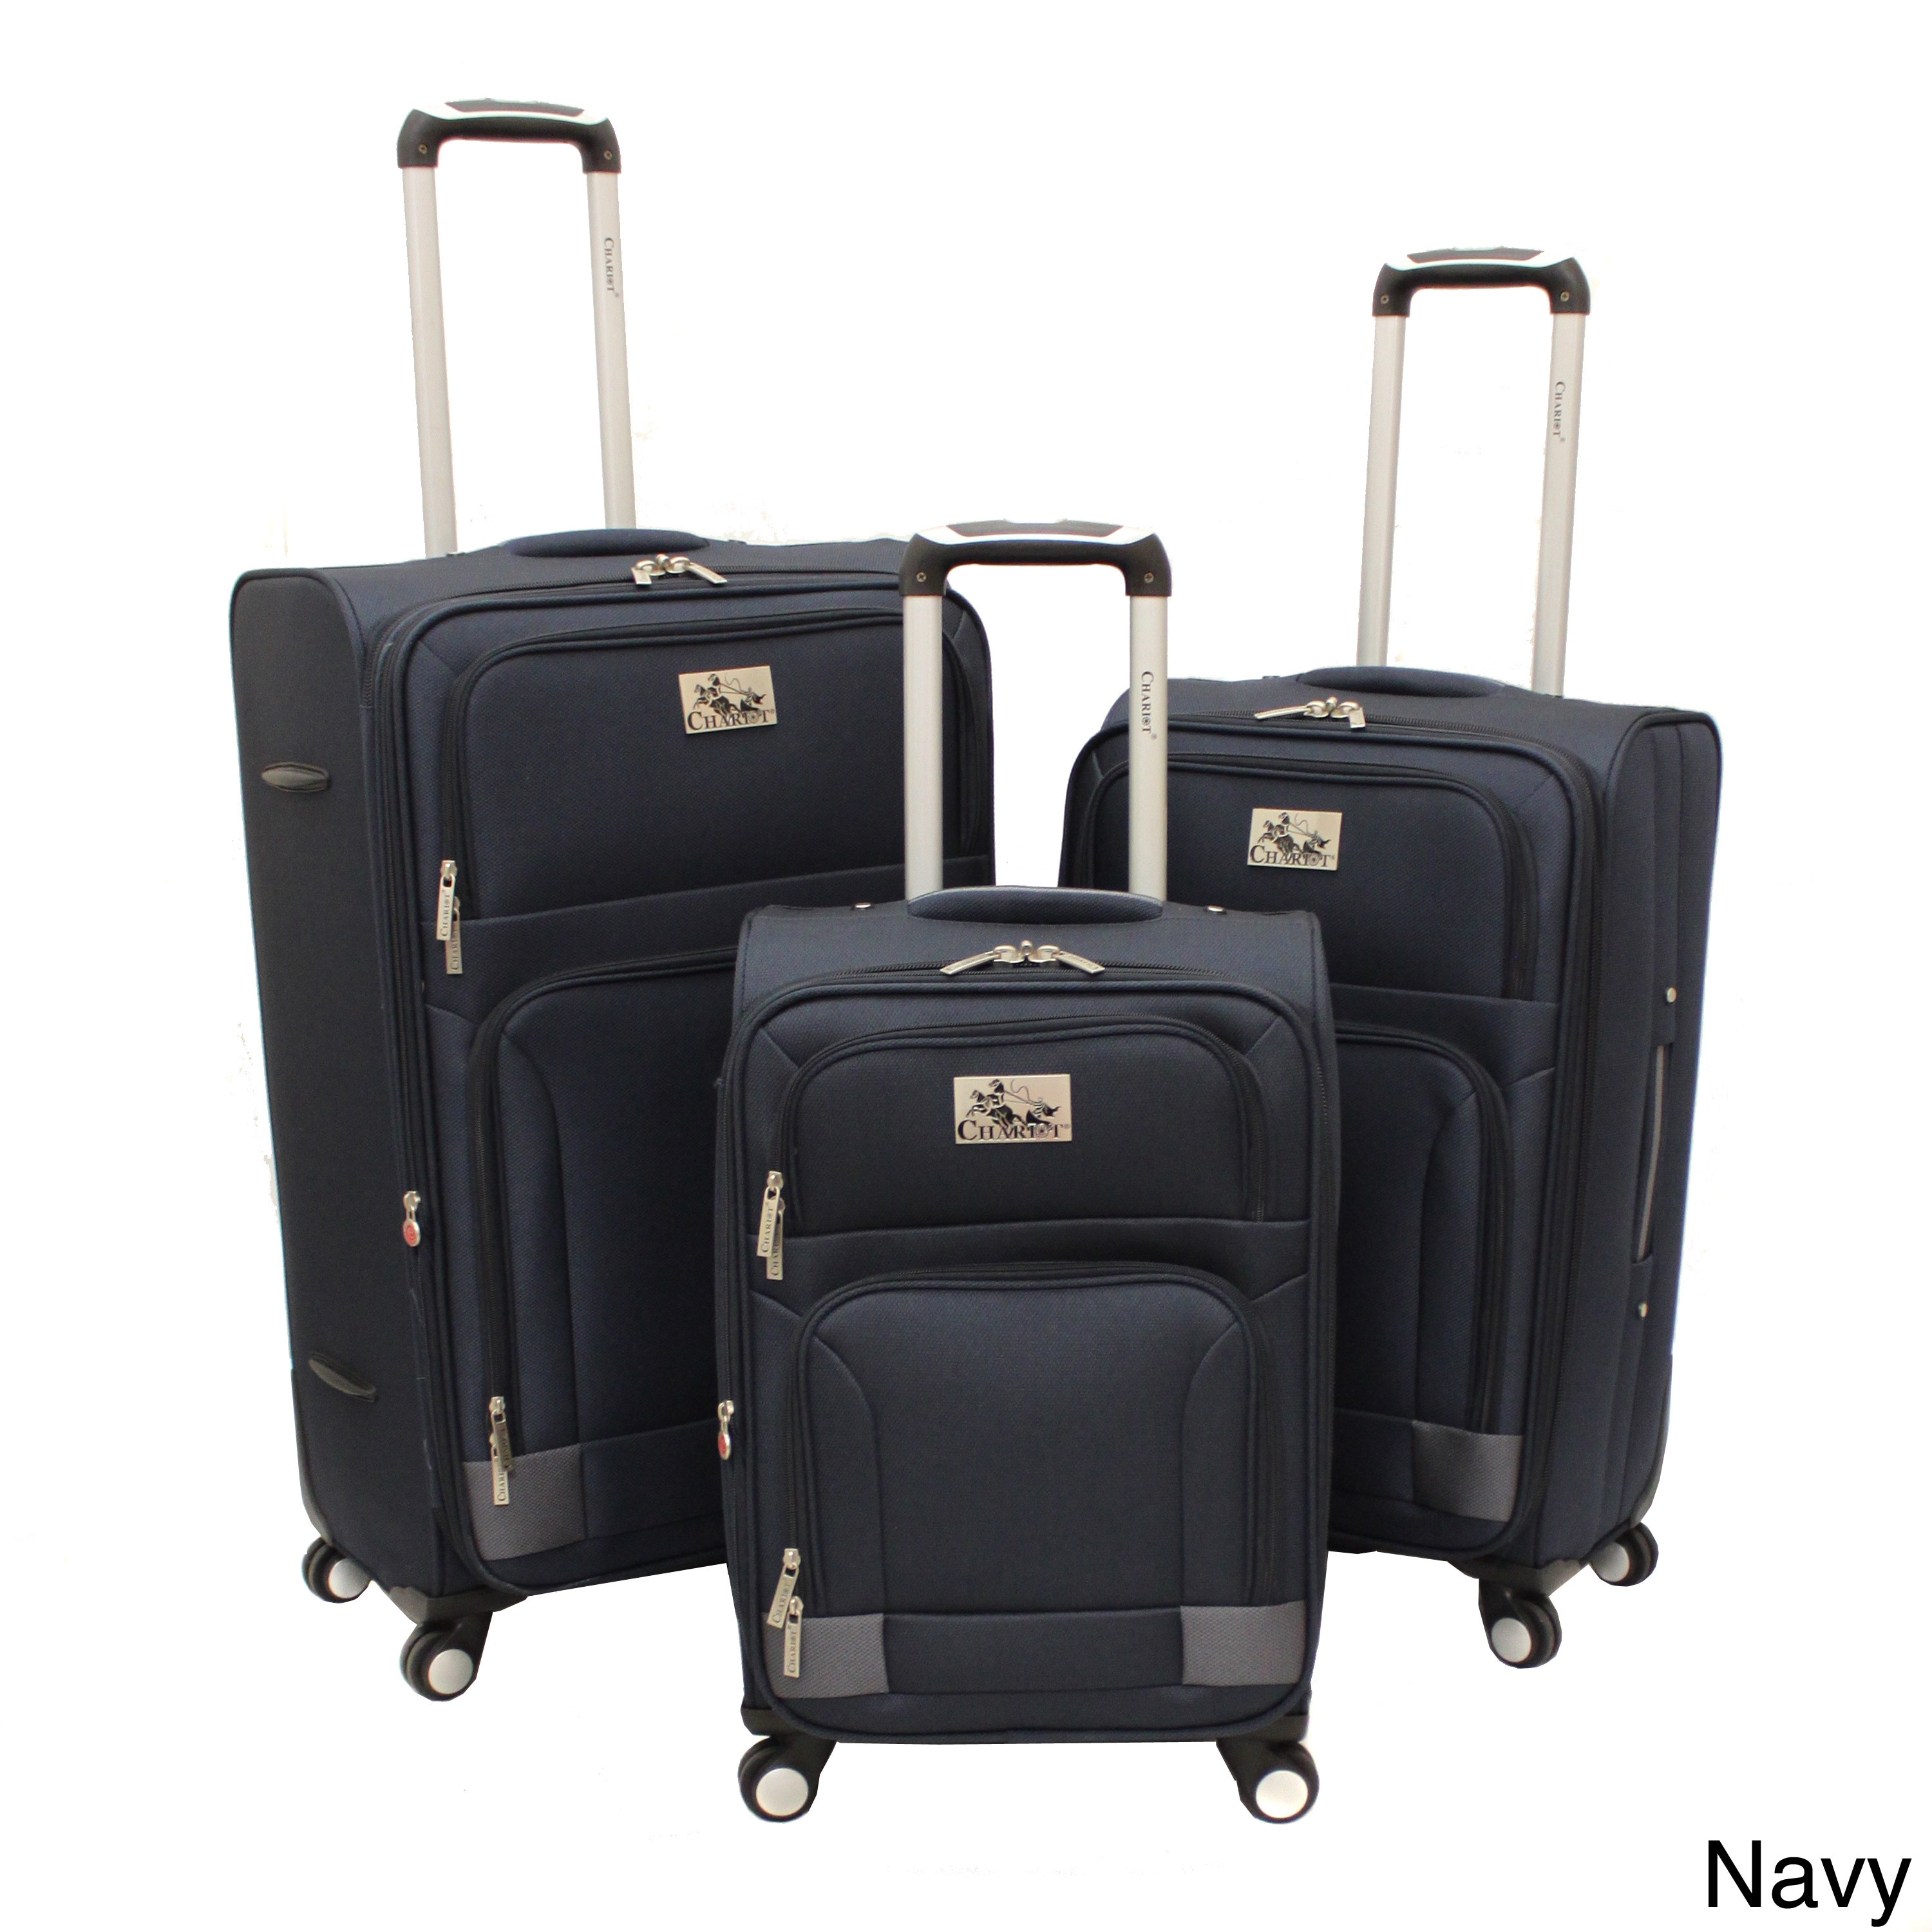 Chariot Travelware  Chariot Genoa Deluxe 3-piece Lightweight Spinner Luggage Set